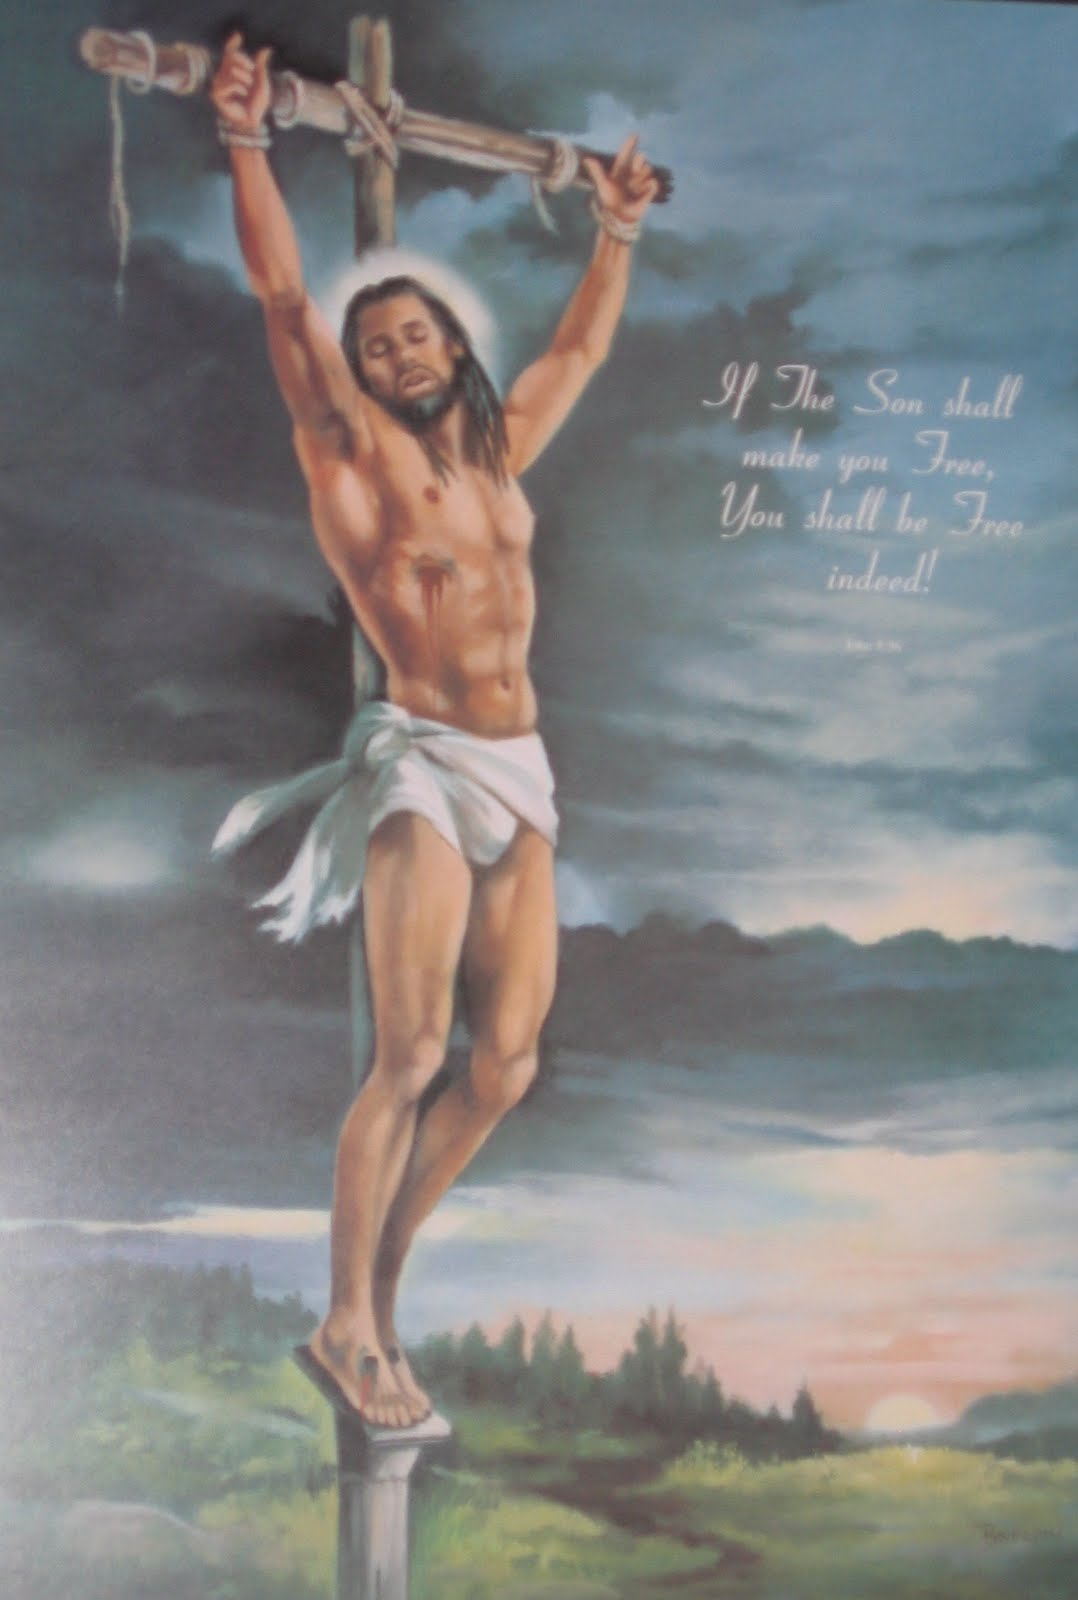 Crucified was naked jesus